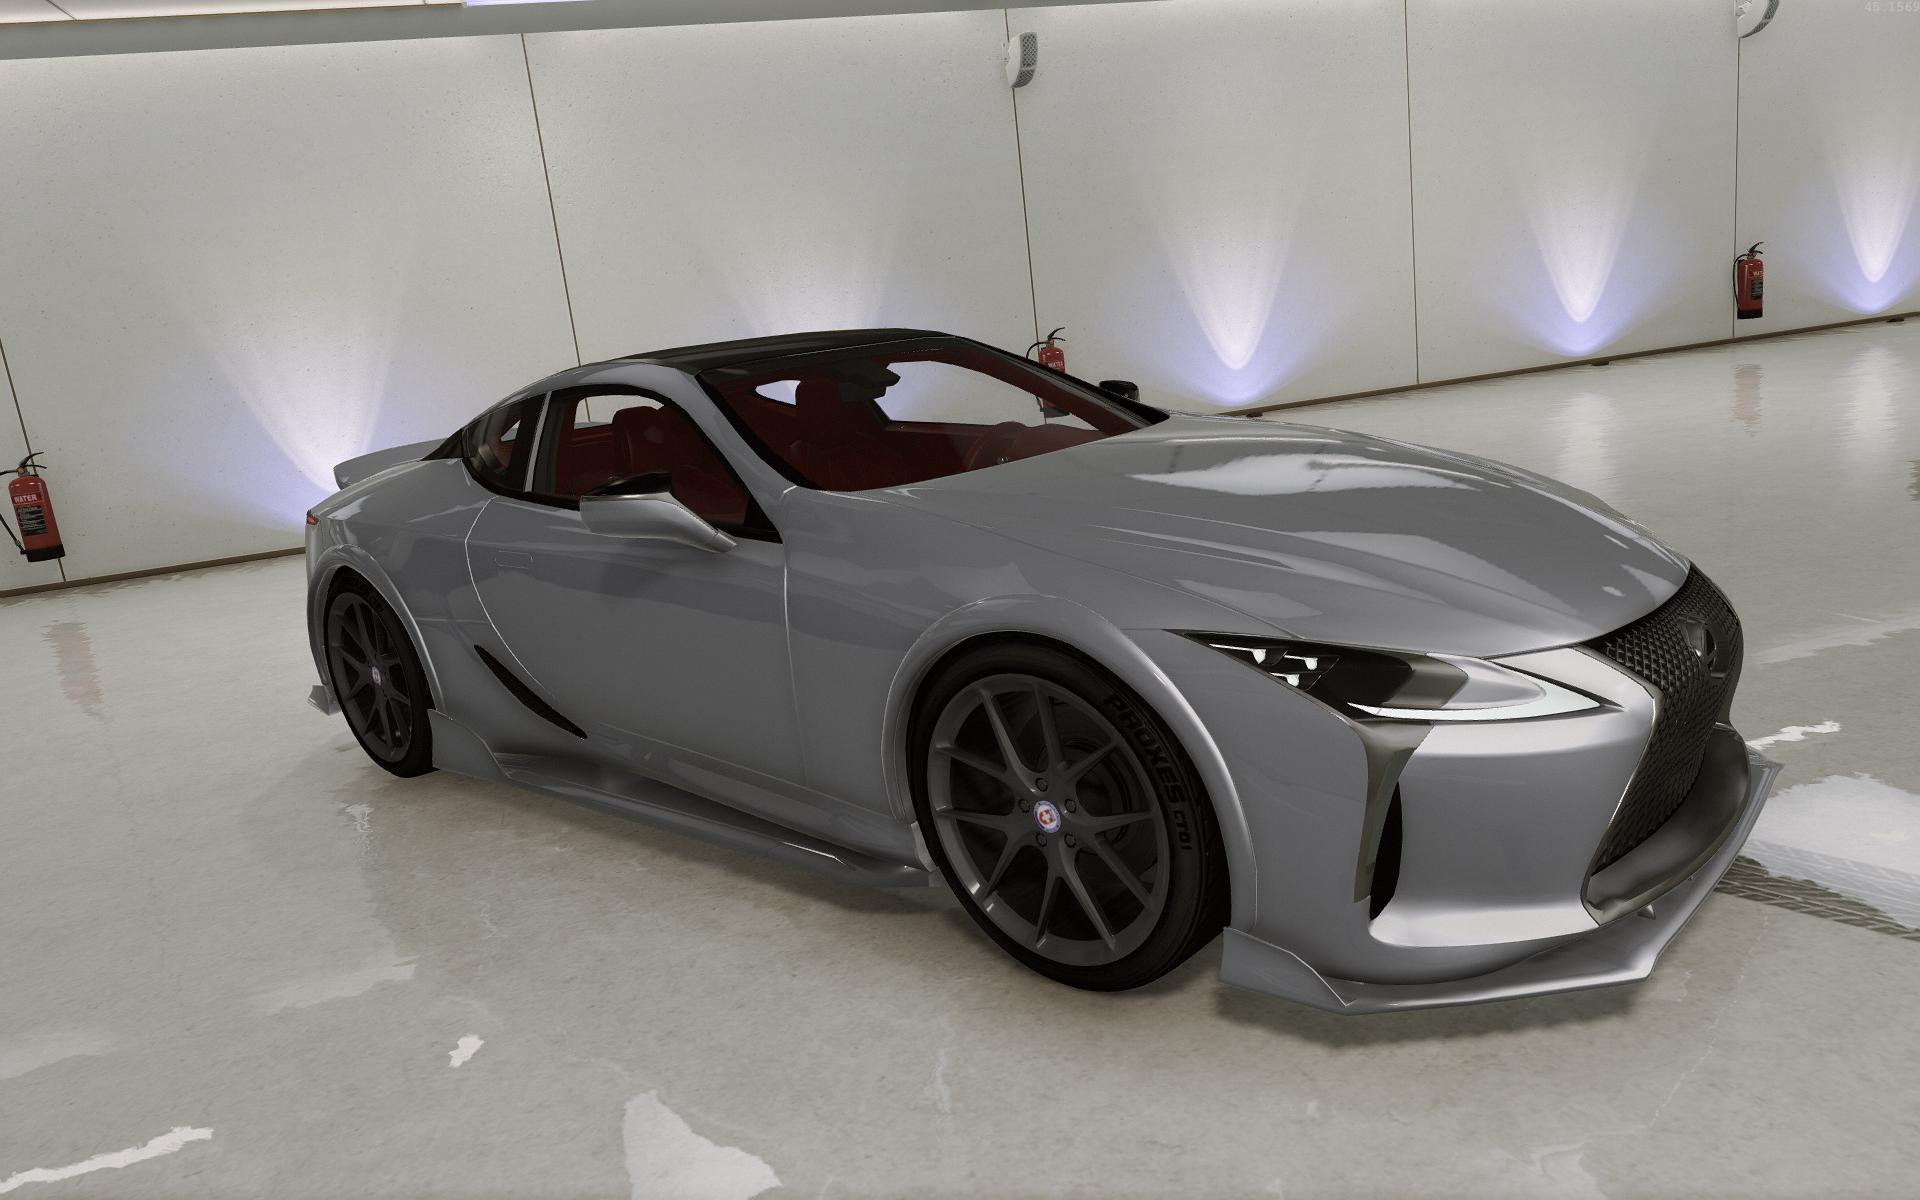 2018 Lexus LC 500 [Add-On | Tuning | HQ] - GTA5-Mods.com